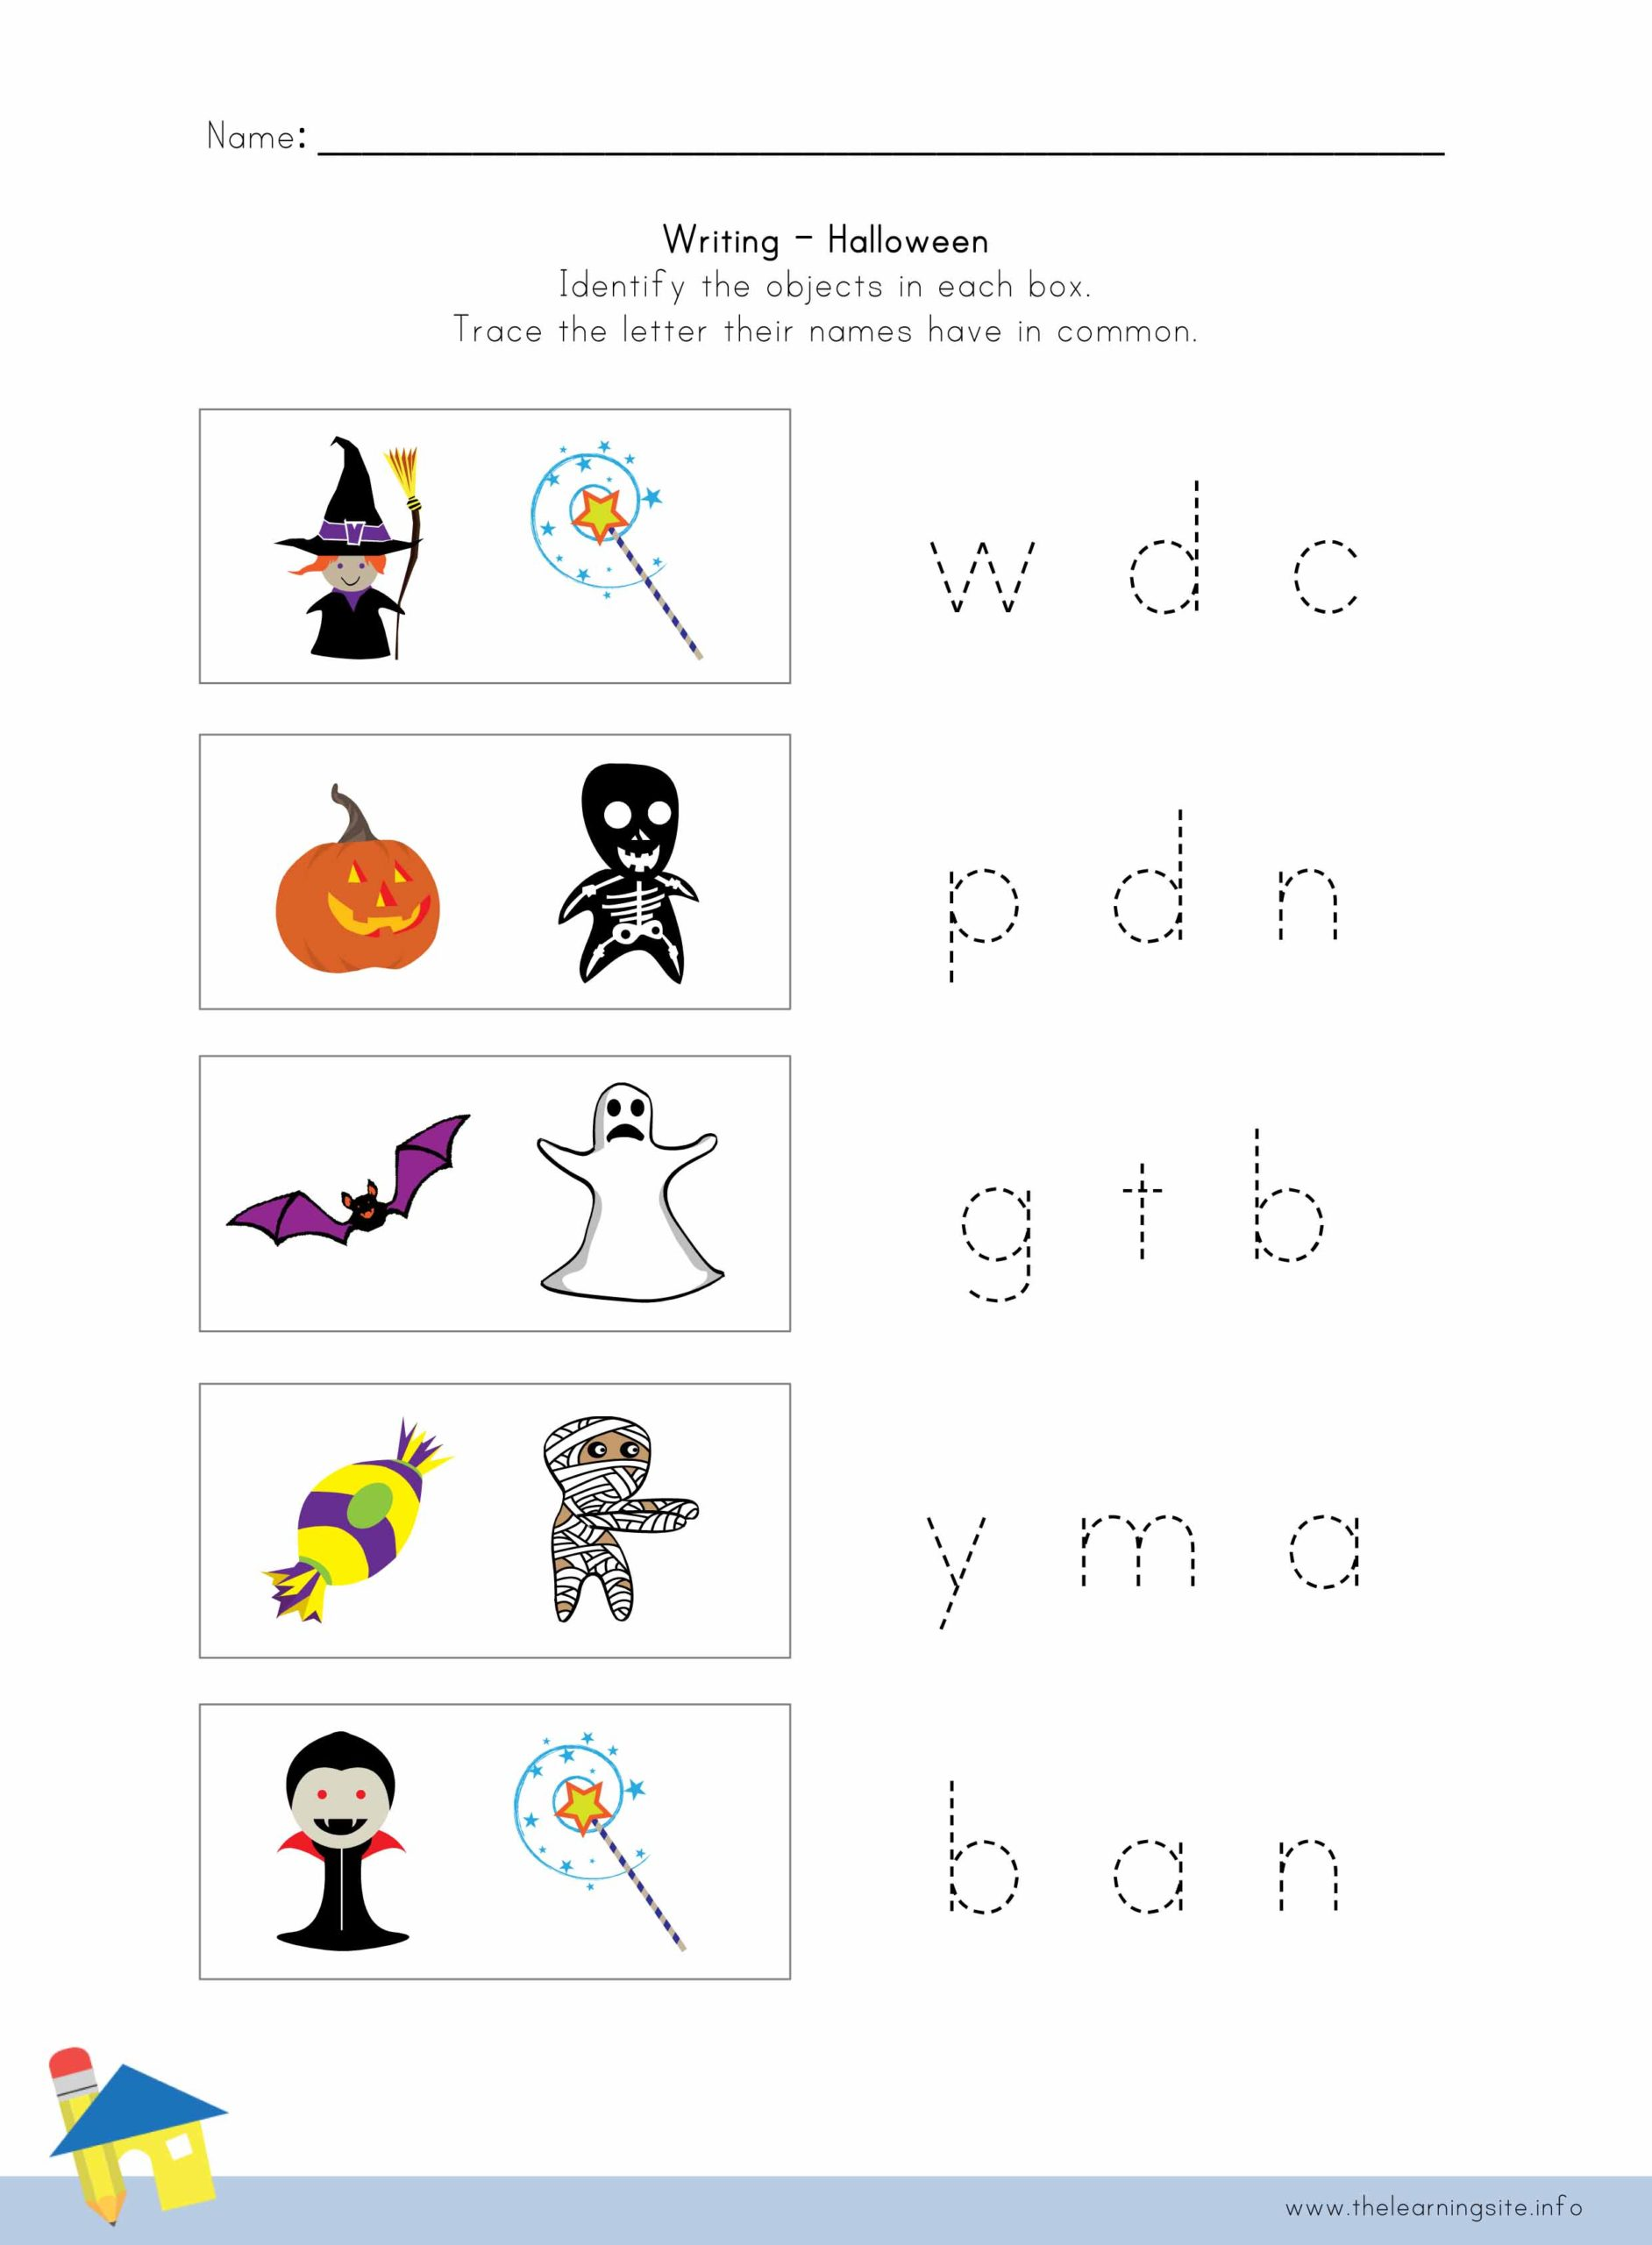 Halloween Writing Worksheet 4 The Learning Site